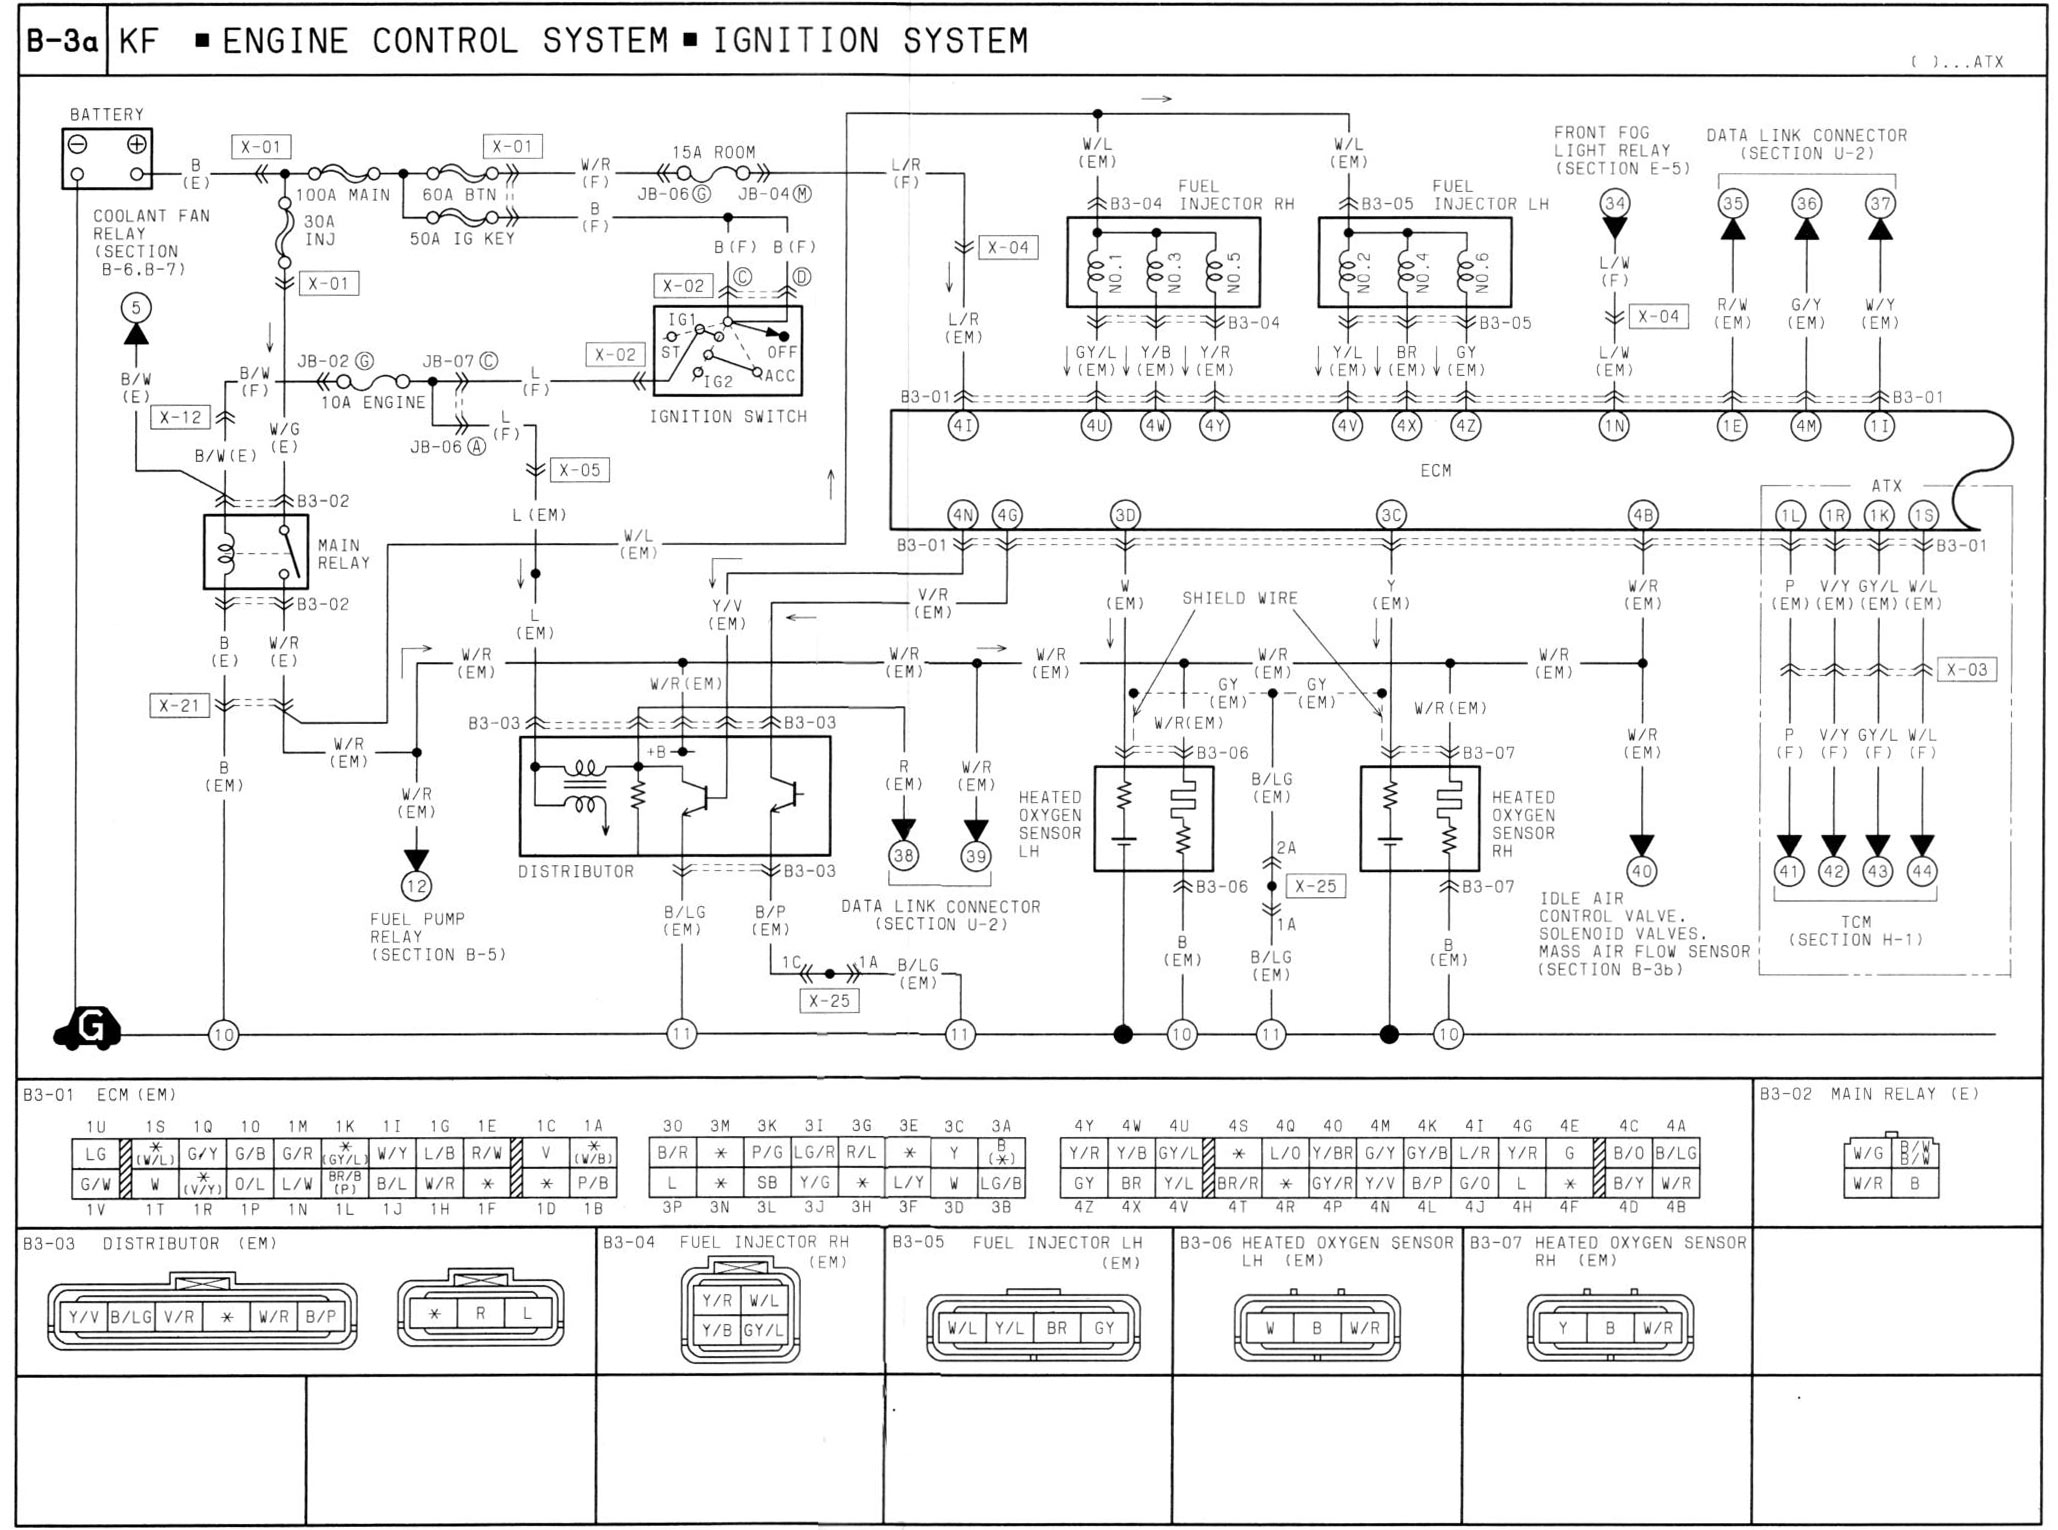 1995 mazda lantis engine wiring diagram astinagt forums mazda 323 astina radio wiring diagram Coupe Mazda Astina